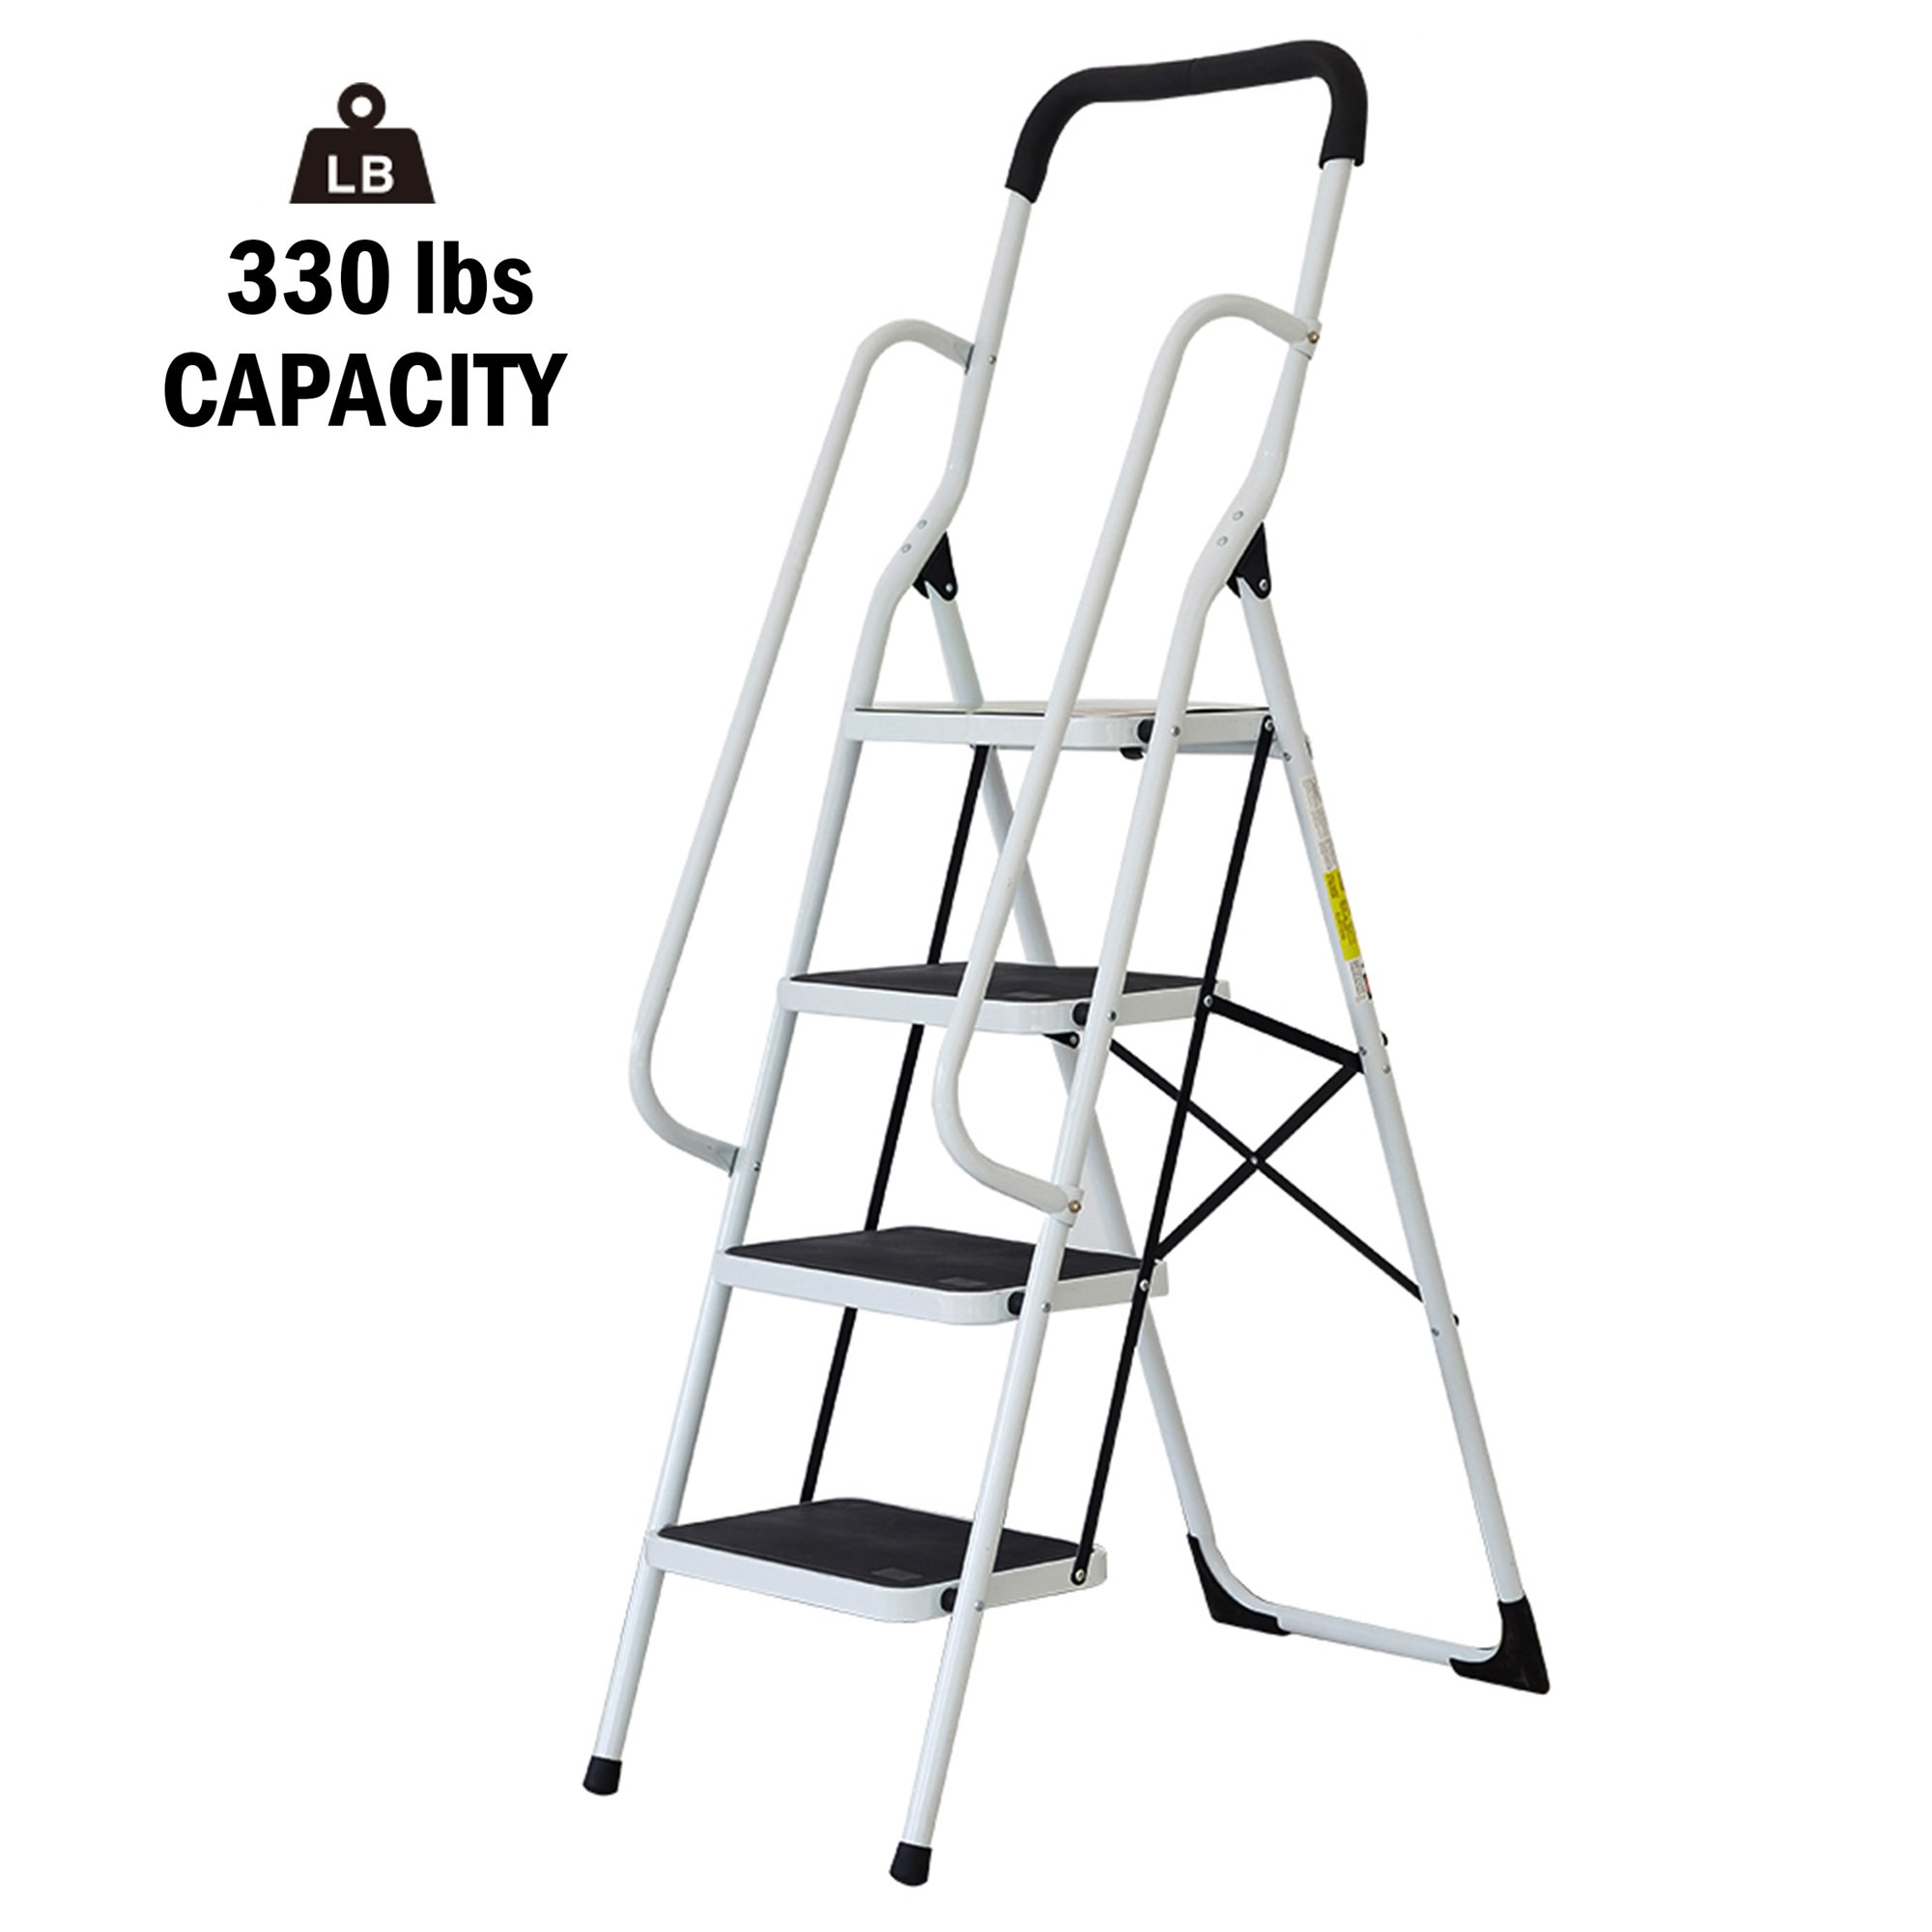 Lucky Tree Folding Step Ladder 4 Step Non-Slip Safety Step Stool with Side Handrailsand Large Pedal kitchen and Home Stepladder, 330 lbs Capacity